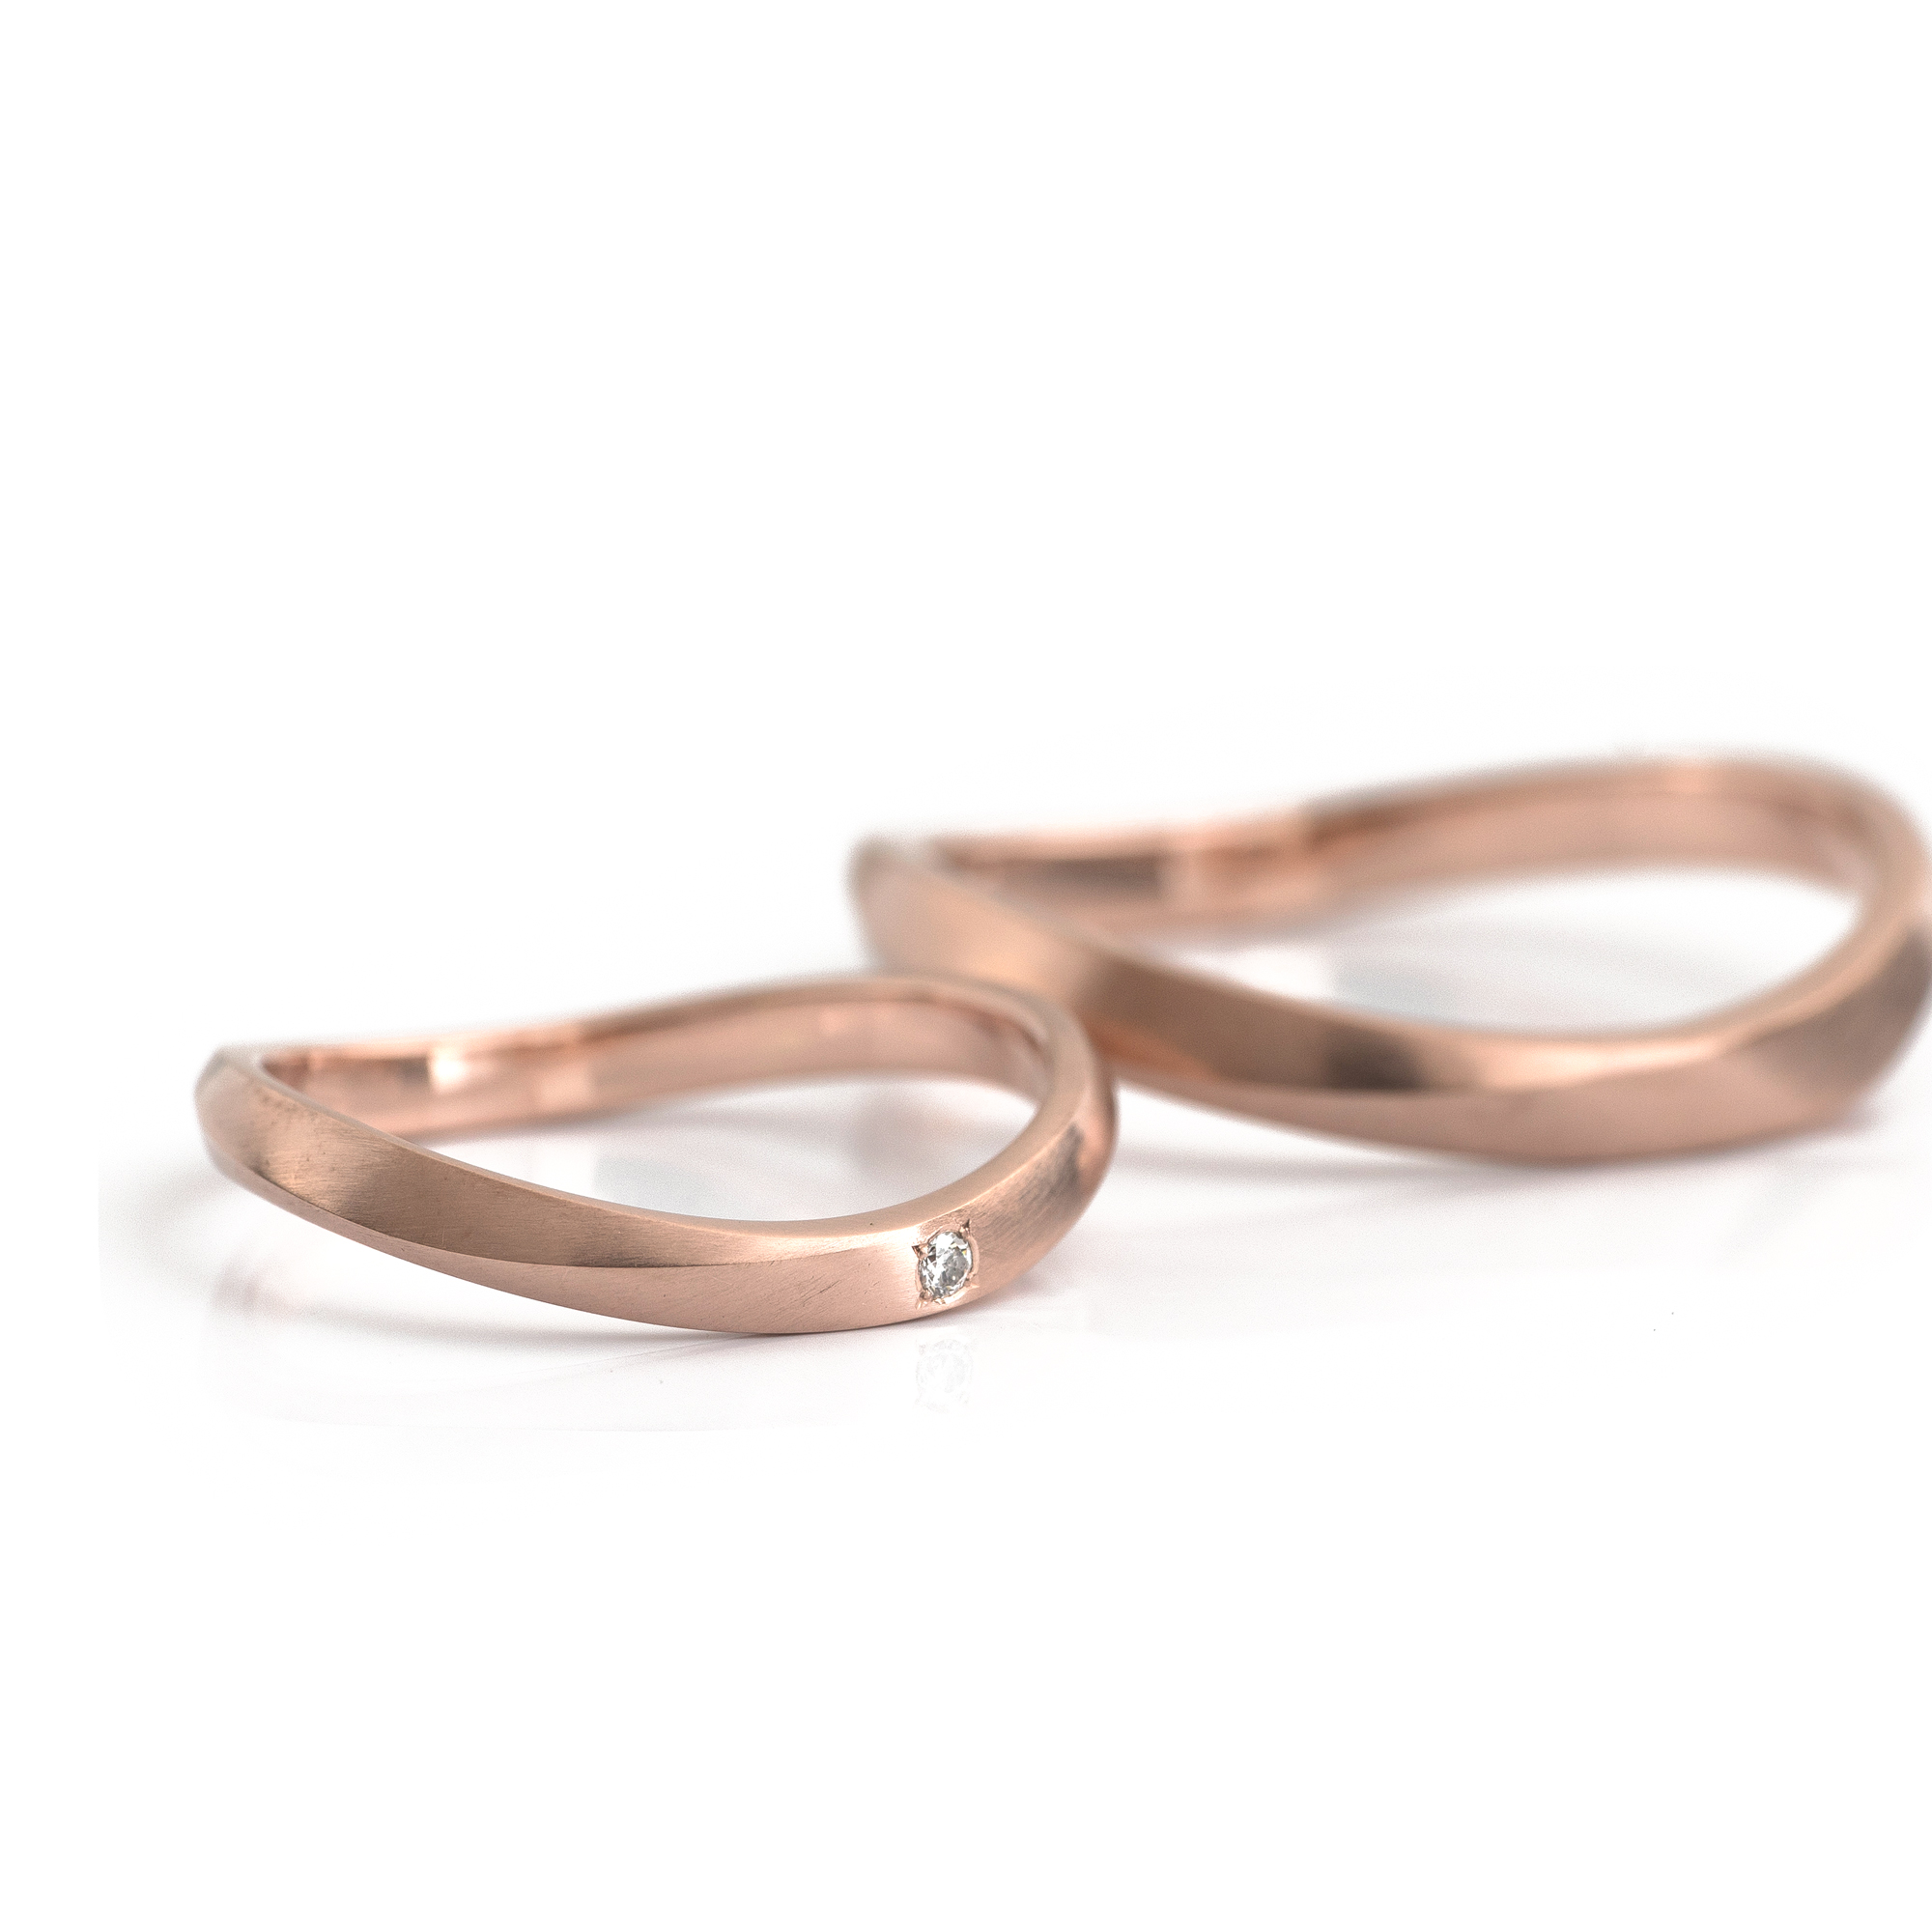 1.9mm and 2.2mm wave ring in 18k pink gold with original cutting line